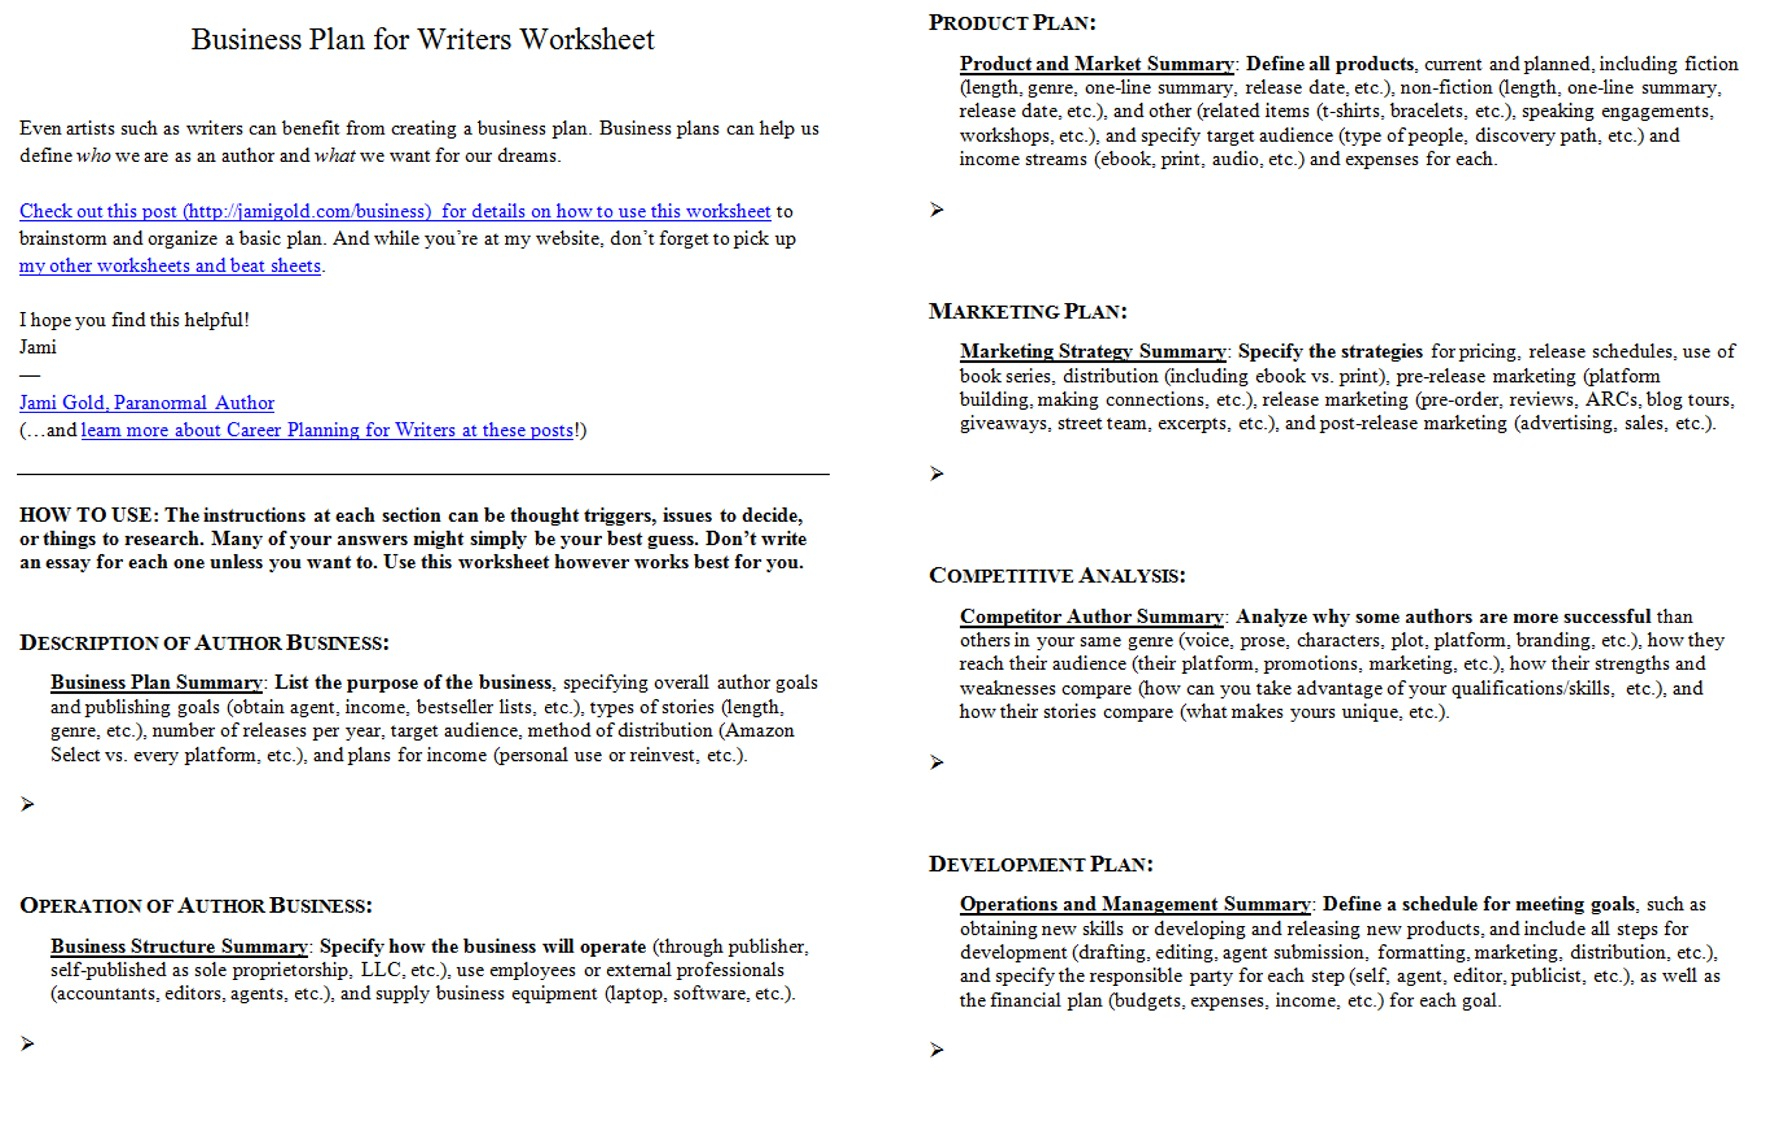 Aldiablosus  Winning Worksheets For Writers  Jami Gold Paranormal Author With Handsome Screen Shot Of Both Pages Of The Business Plan For Writers Worksheet With Beauteous Fractions To Decimals Worksheet Th Grade Also Shape Worksheets For Toddlers In Addition Map Of Africa Worksheet And Spring Worksheets For Th Grade As Well As Reading Comprehension Worksheets For Th Grade Additionally Ionic Compounds Names And Formulas Worksheet From Jamigoldcom With Aldiablosus  Handsome Worksheets For Writers  Jami Gold Paranormal Author With Beauteous Screen Shot Of Both Pages Of The Business Plan For Writers Worksheet And Winning Fractions To Decimals Worksheet Th Grade Also Shape Worksheets For Toddlers In Addition Map Of Africa Worksheet From Jamigoldcom